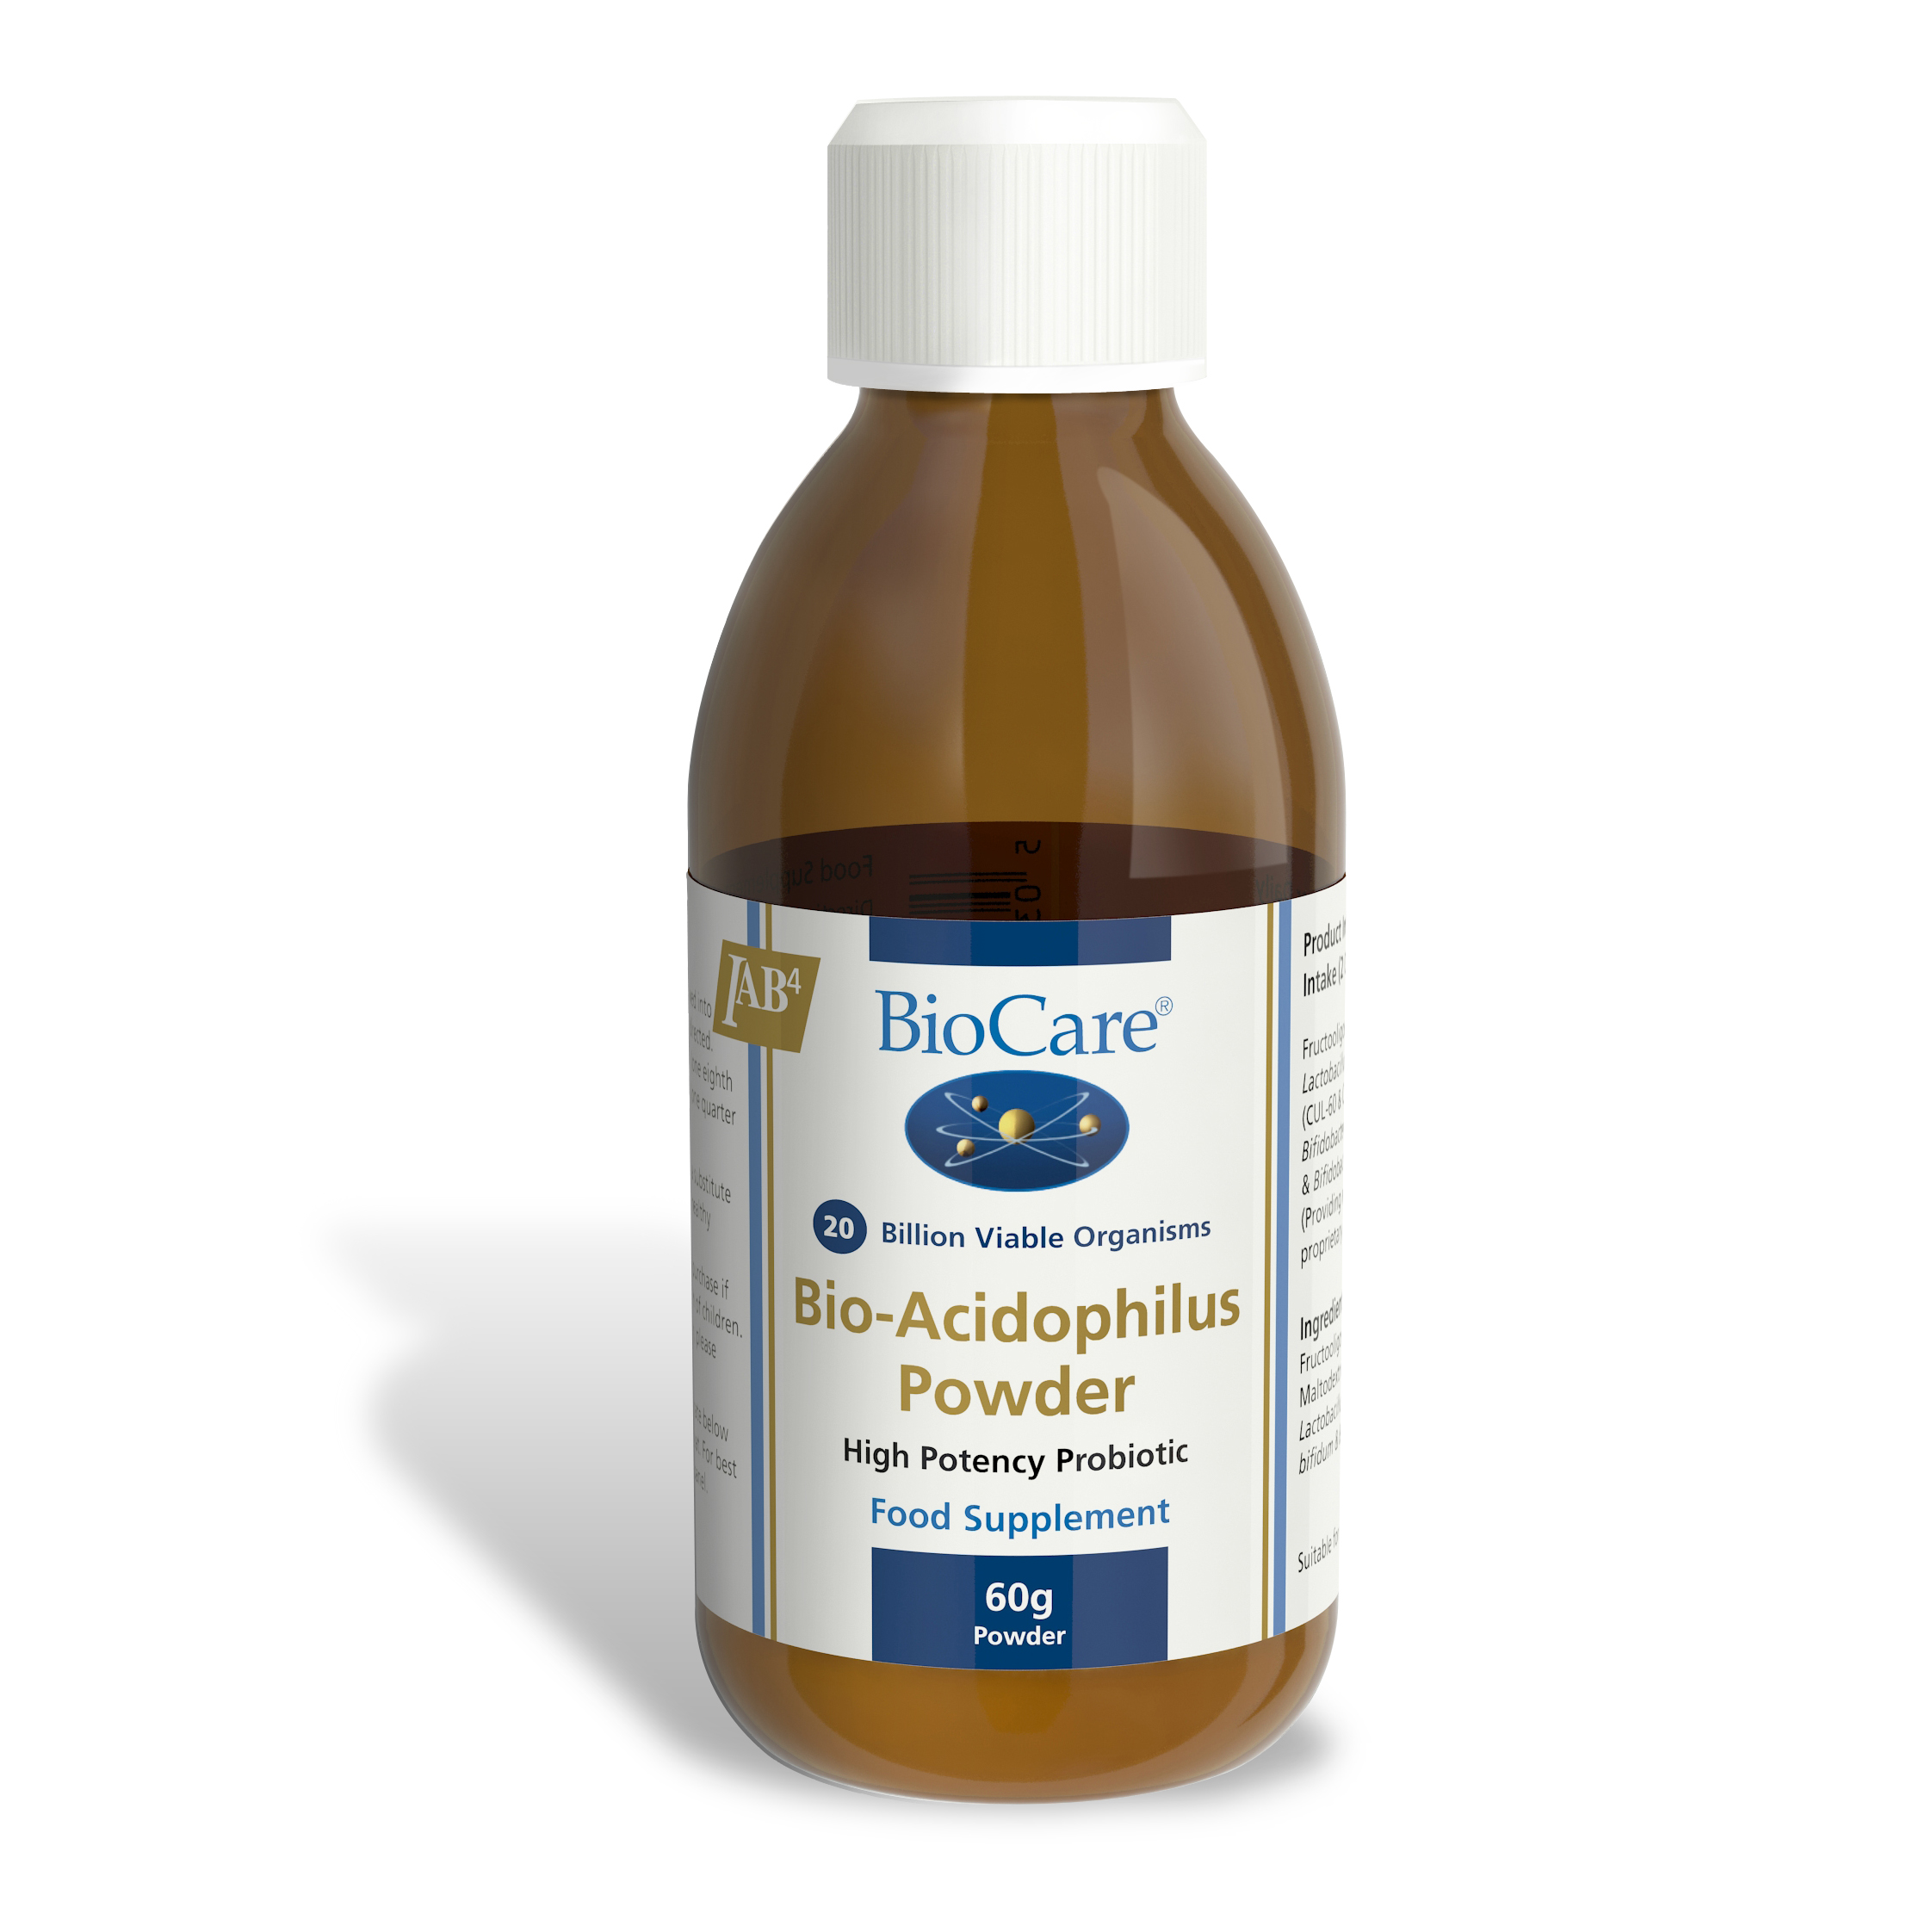 BioCare Bio-Acidophilus Powder